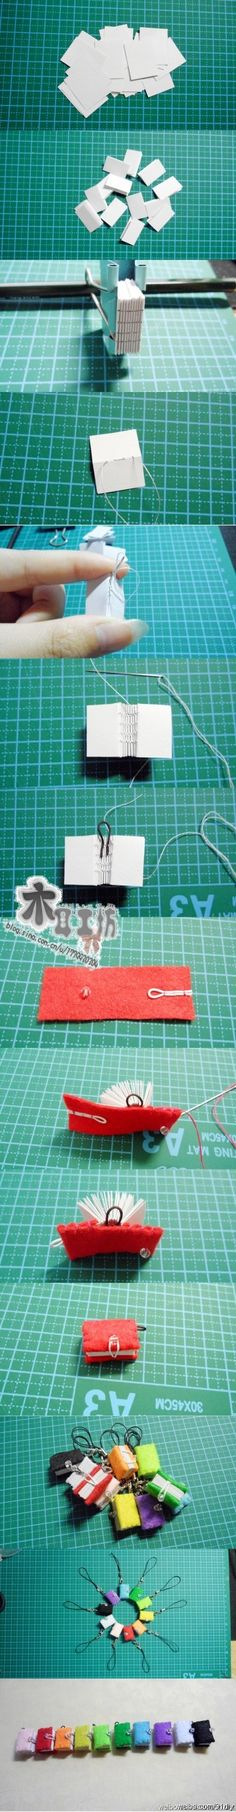 Book binding in tiny scale